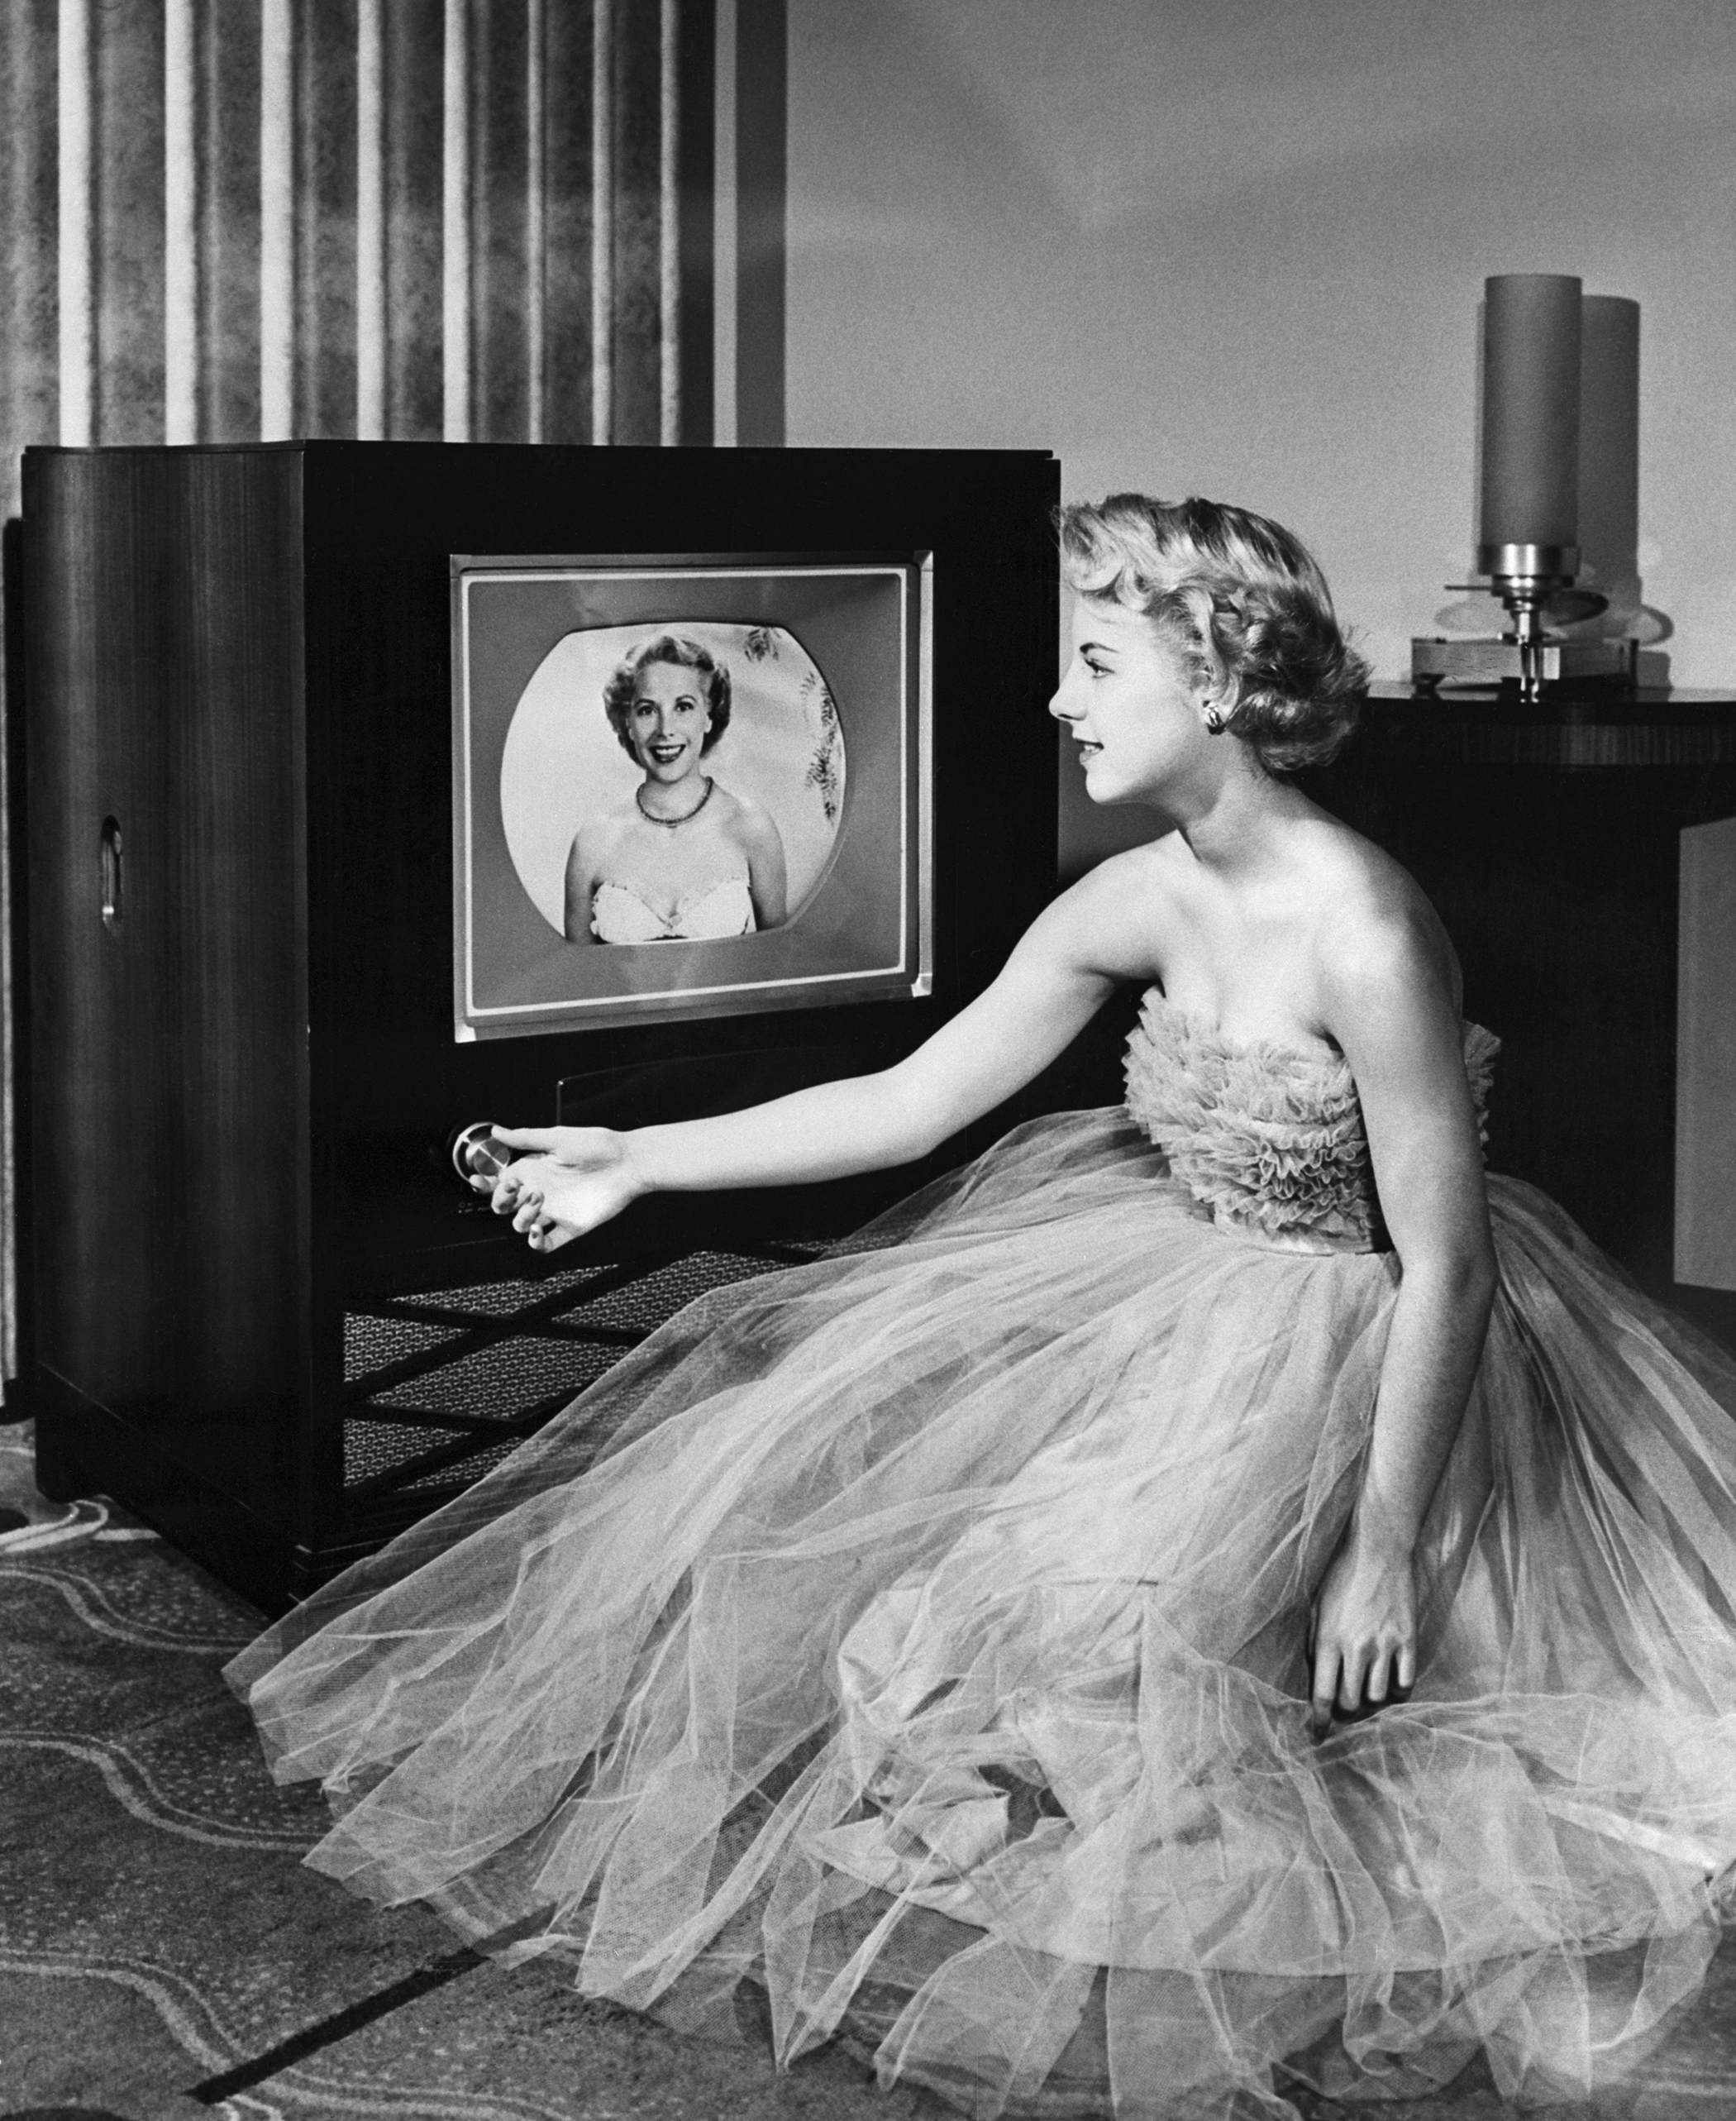 Color television made its debut in 1952 after the Federal Communications Commission accepted the RCA-developed  Compatible Color  System permitting colorcasting of programs without blanking the screens of black-and-white TV sets.